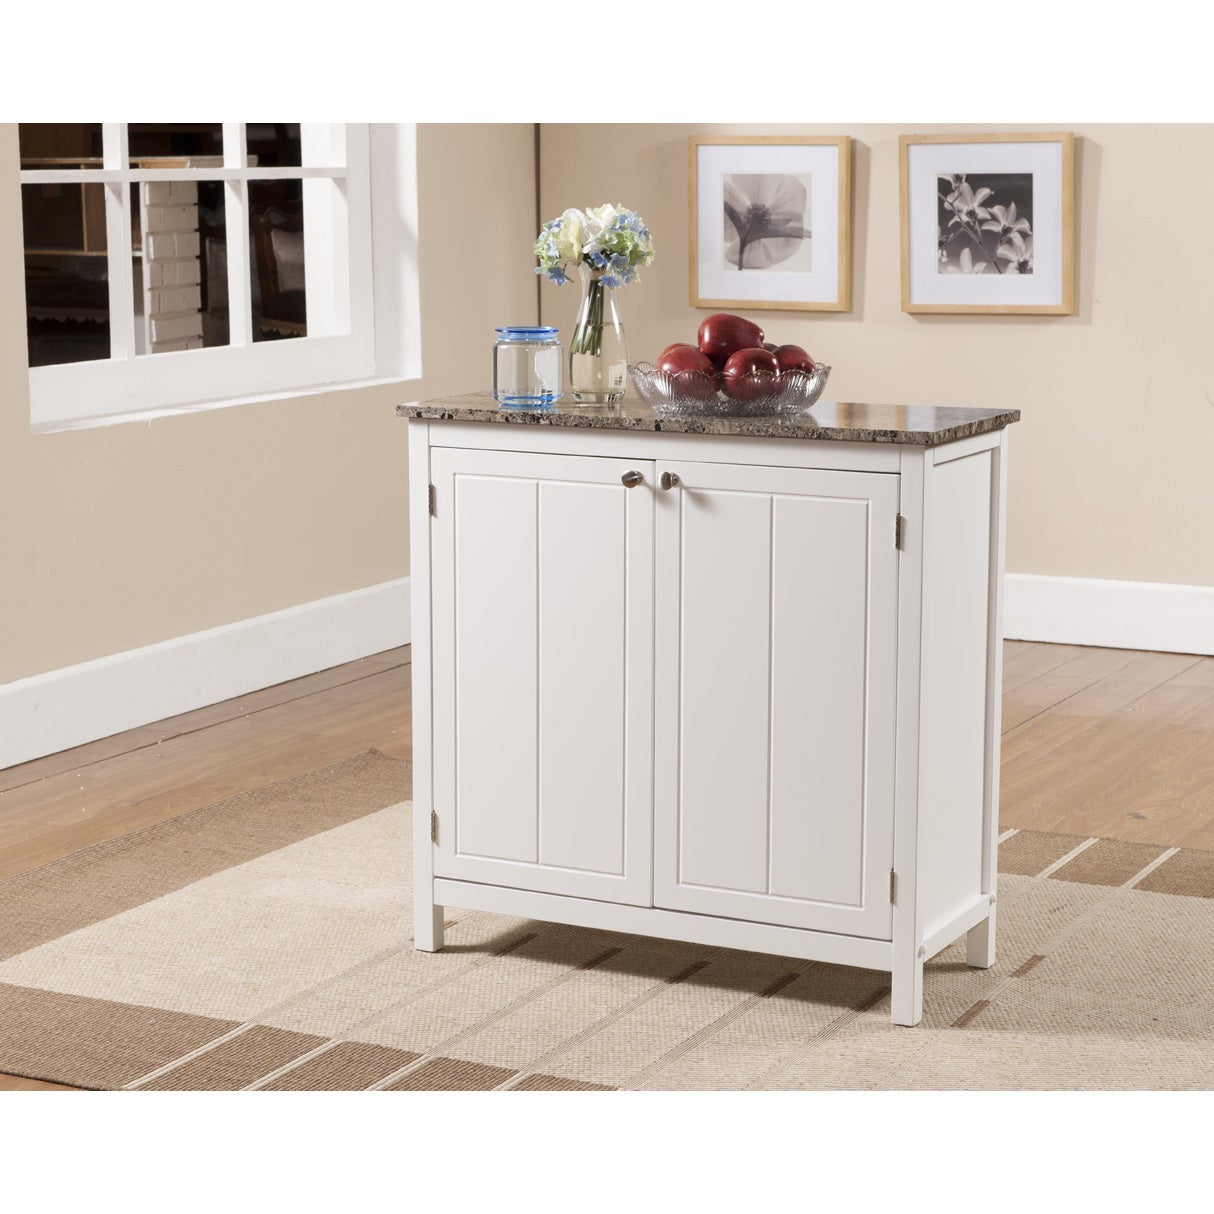 K B White and Faux Marble Small Kitchen Island Cabinet | eBay